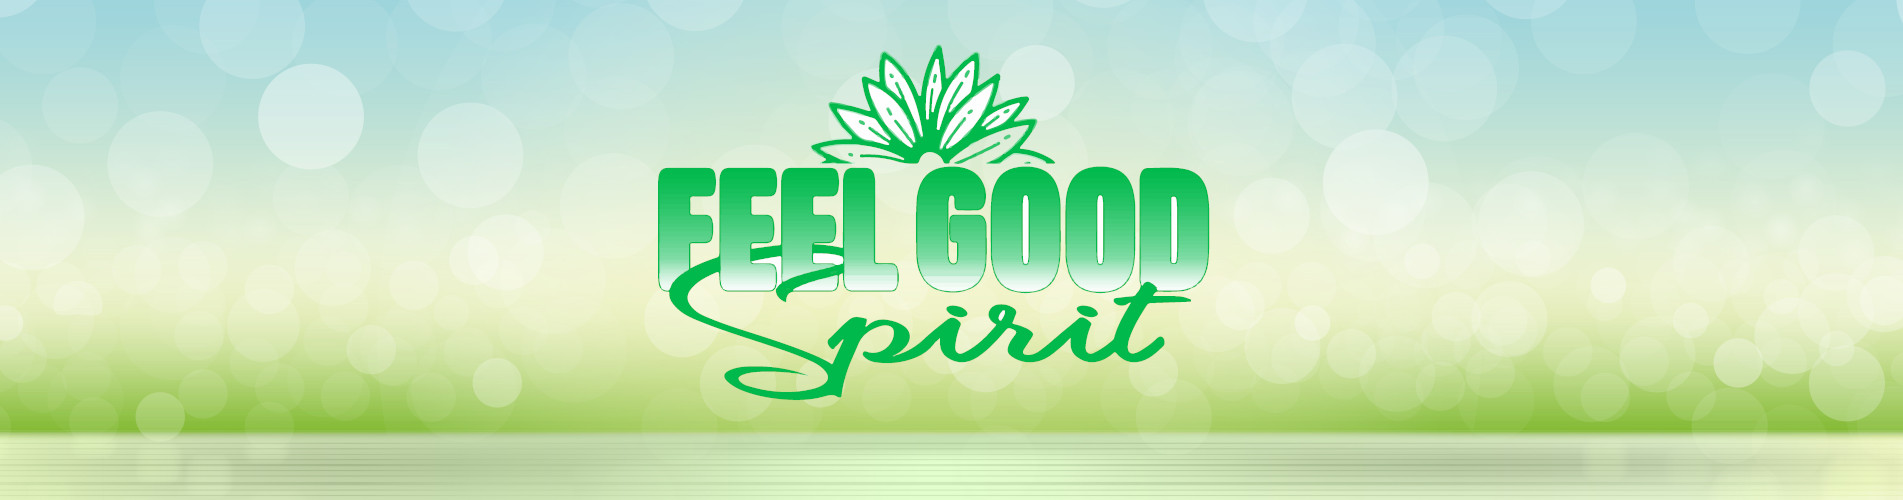 Illustration feelgood spirit